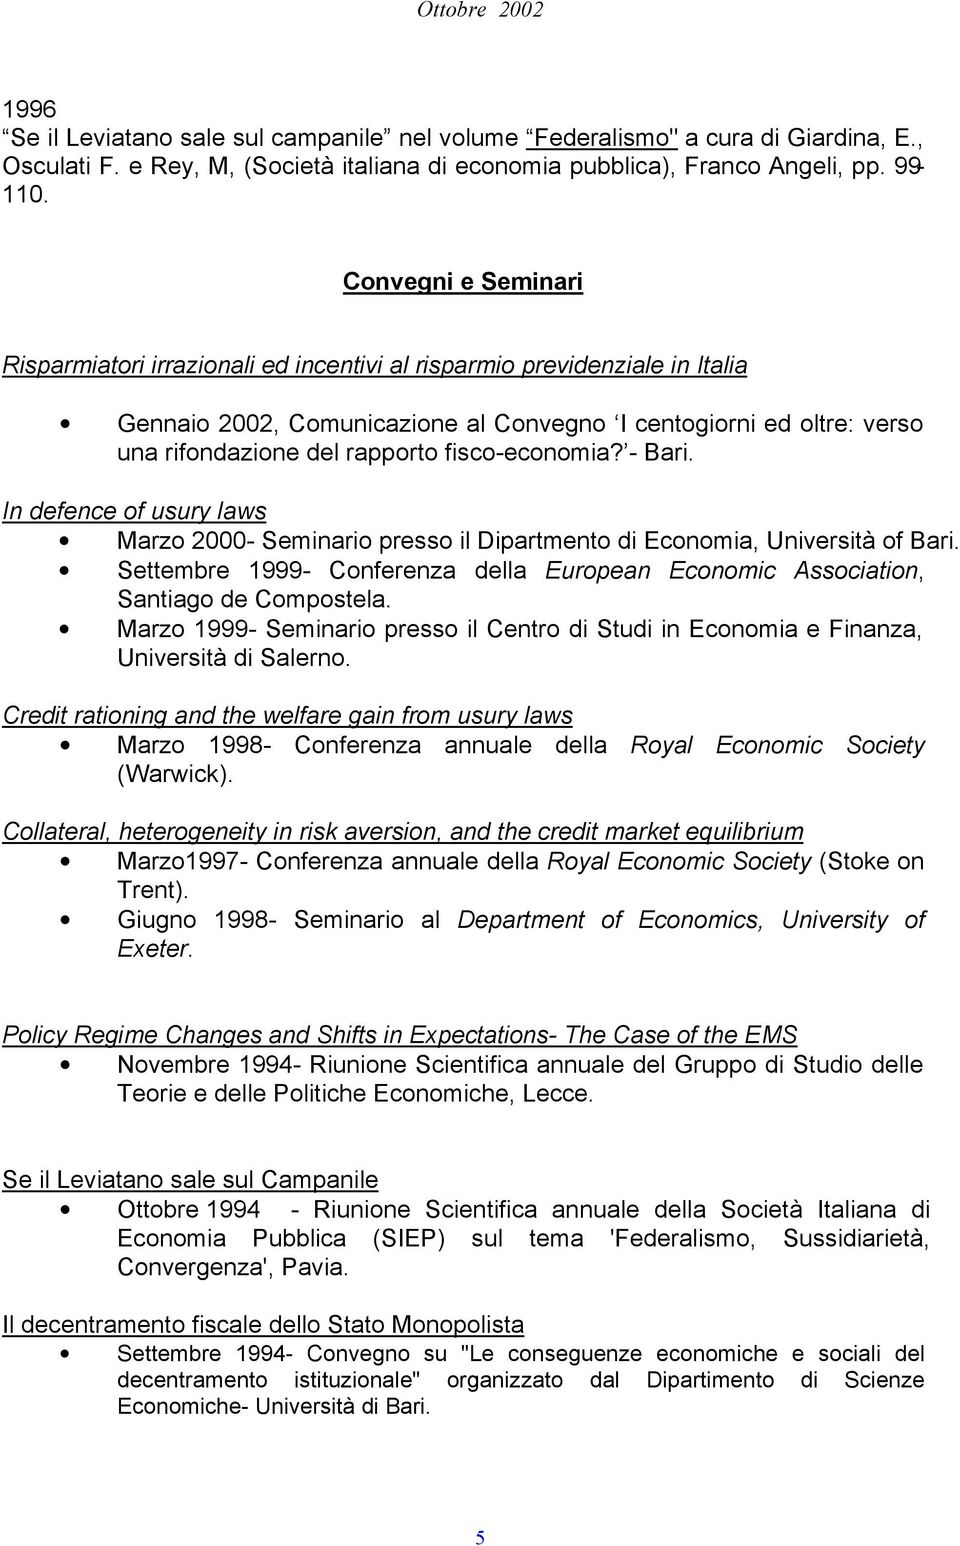 fisco-economia? - Bari. In defence of usury laws Marzo 2000- Seminario presso il Dipartmento di Economia, Università of Bari.